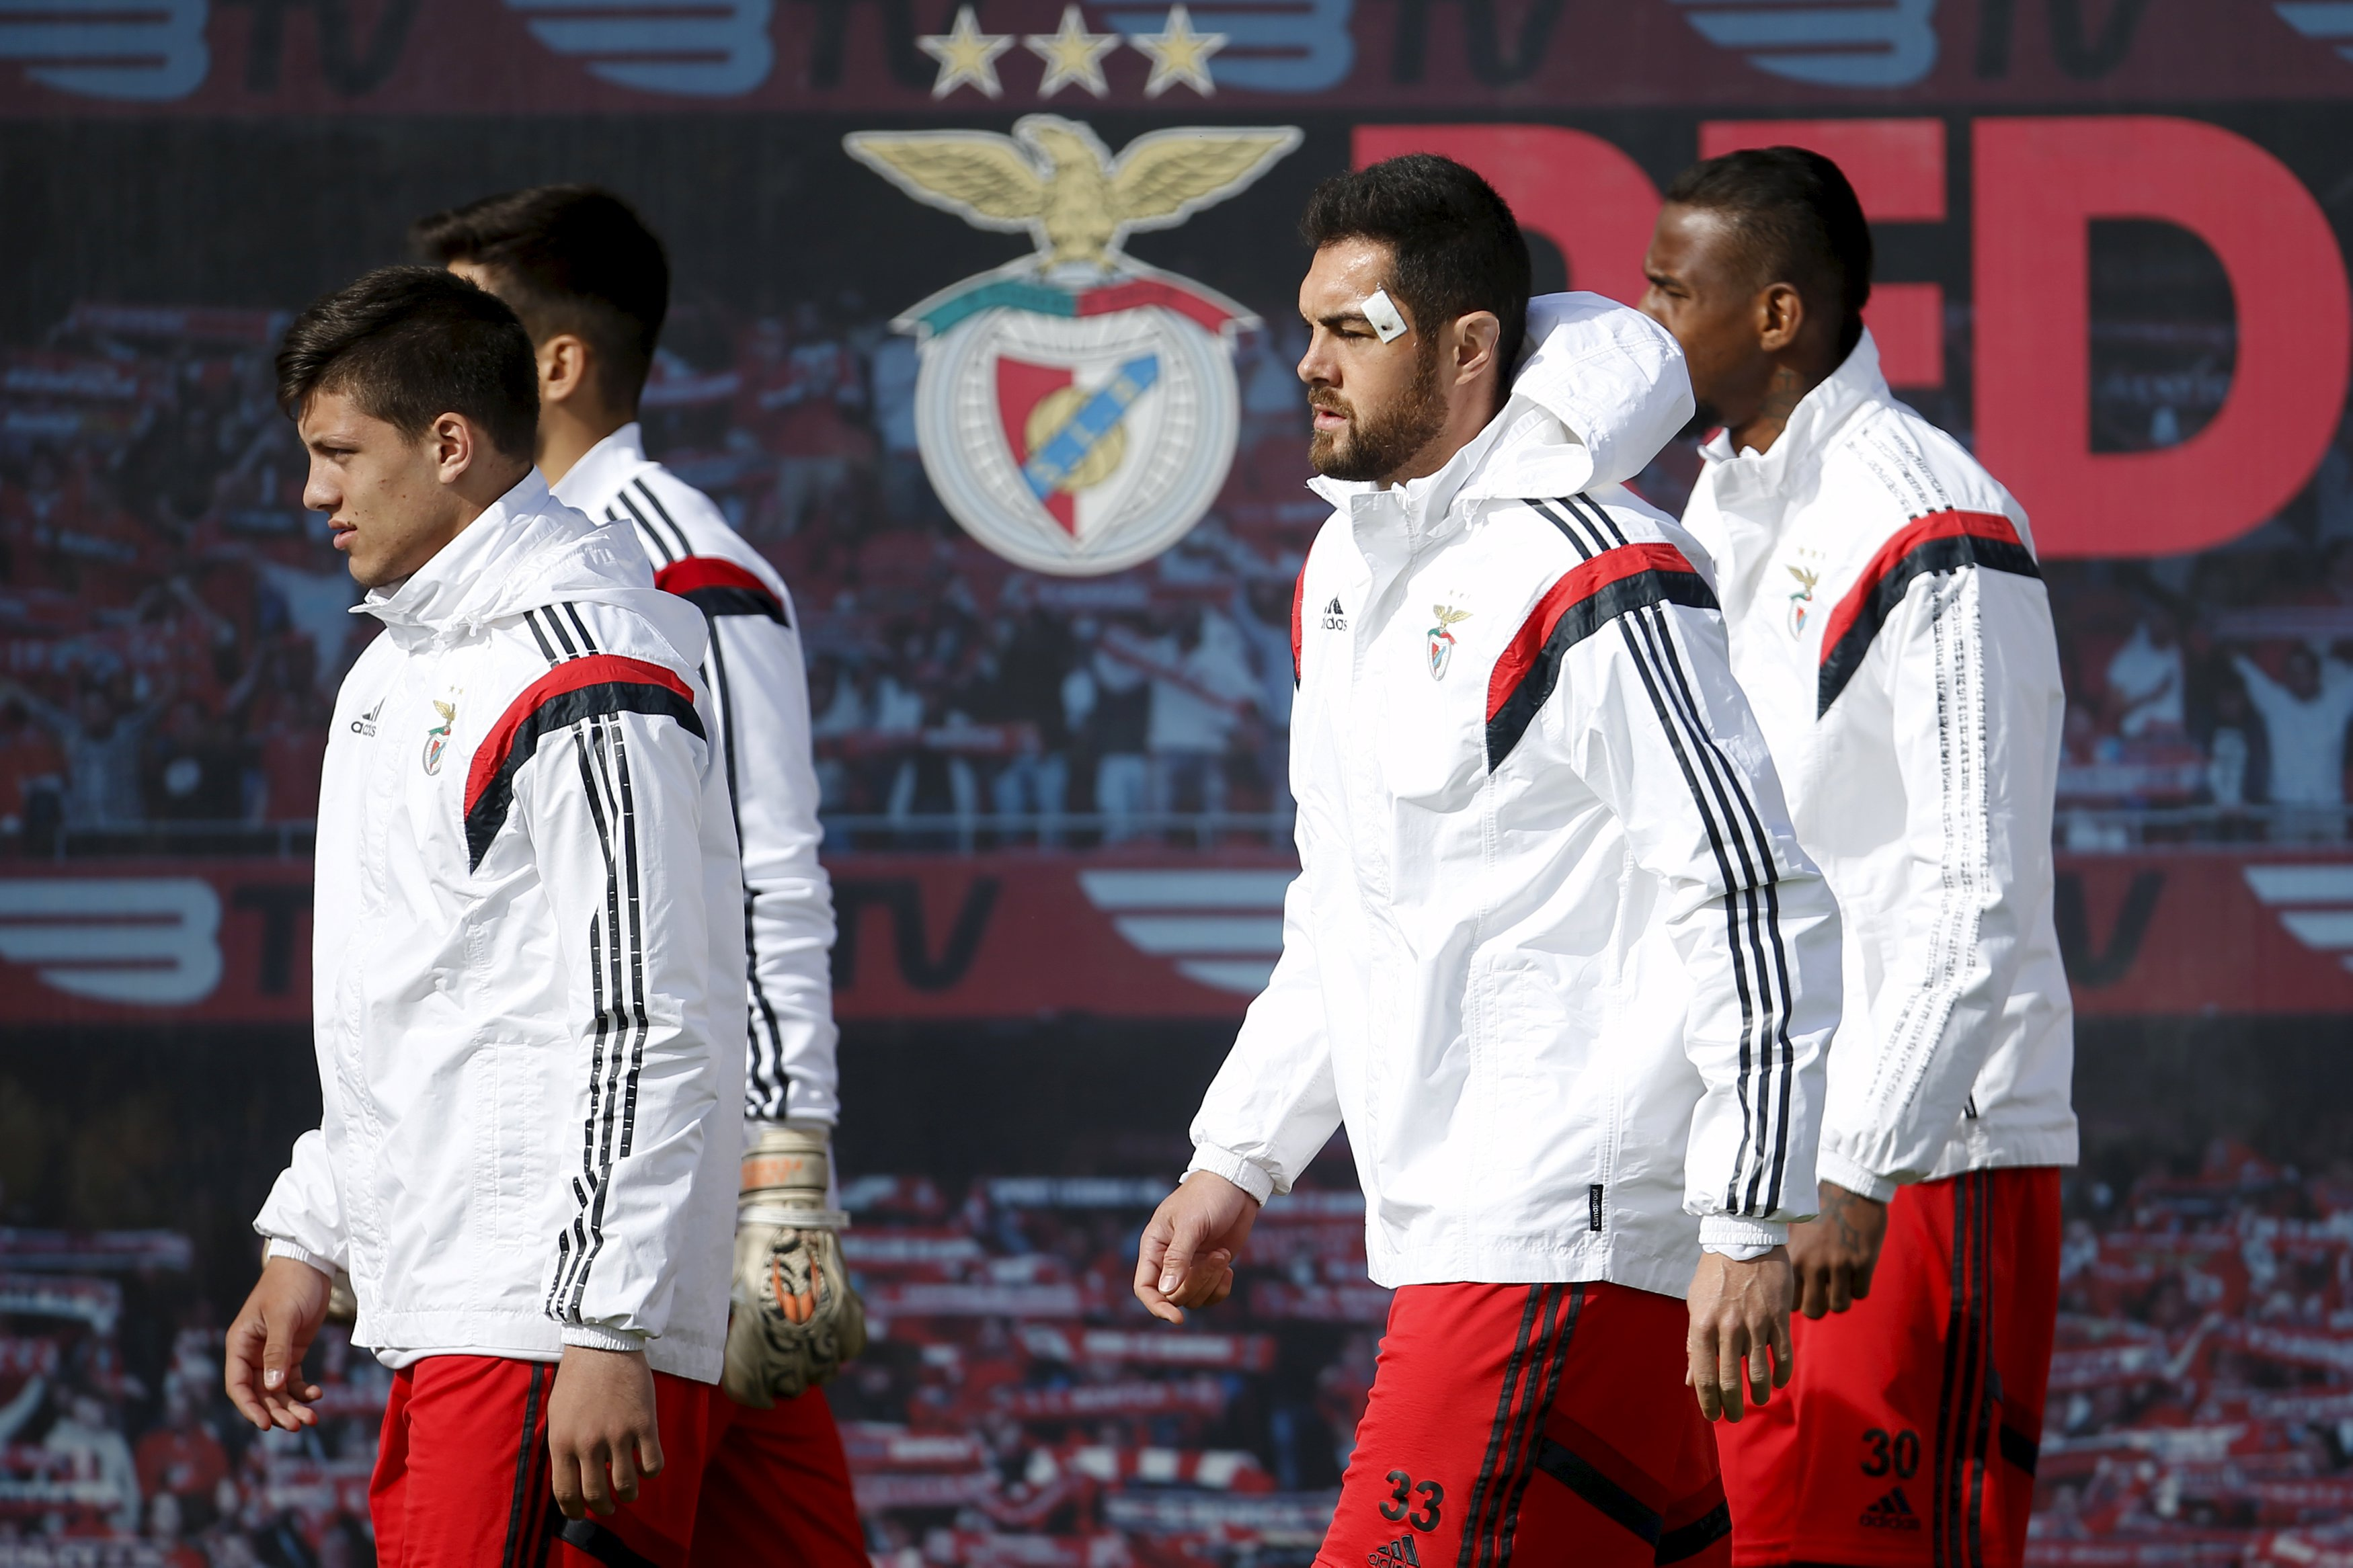 Benfica coach faces another test of ability to improvise